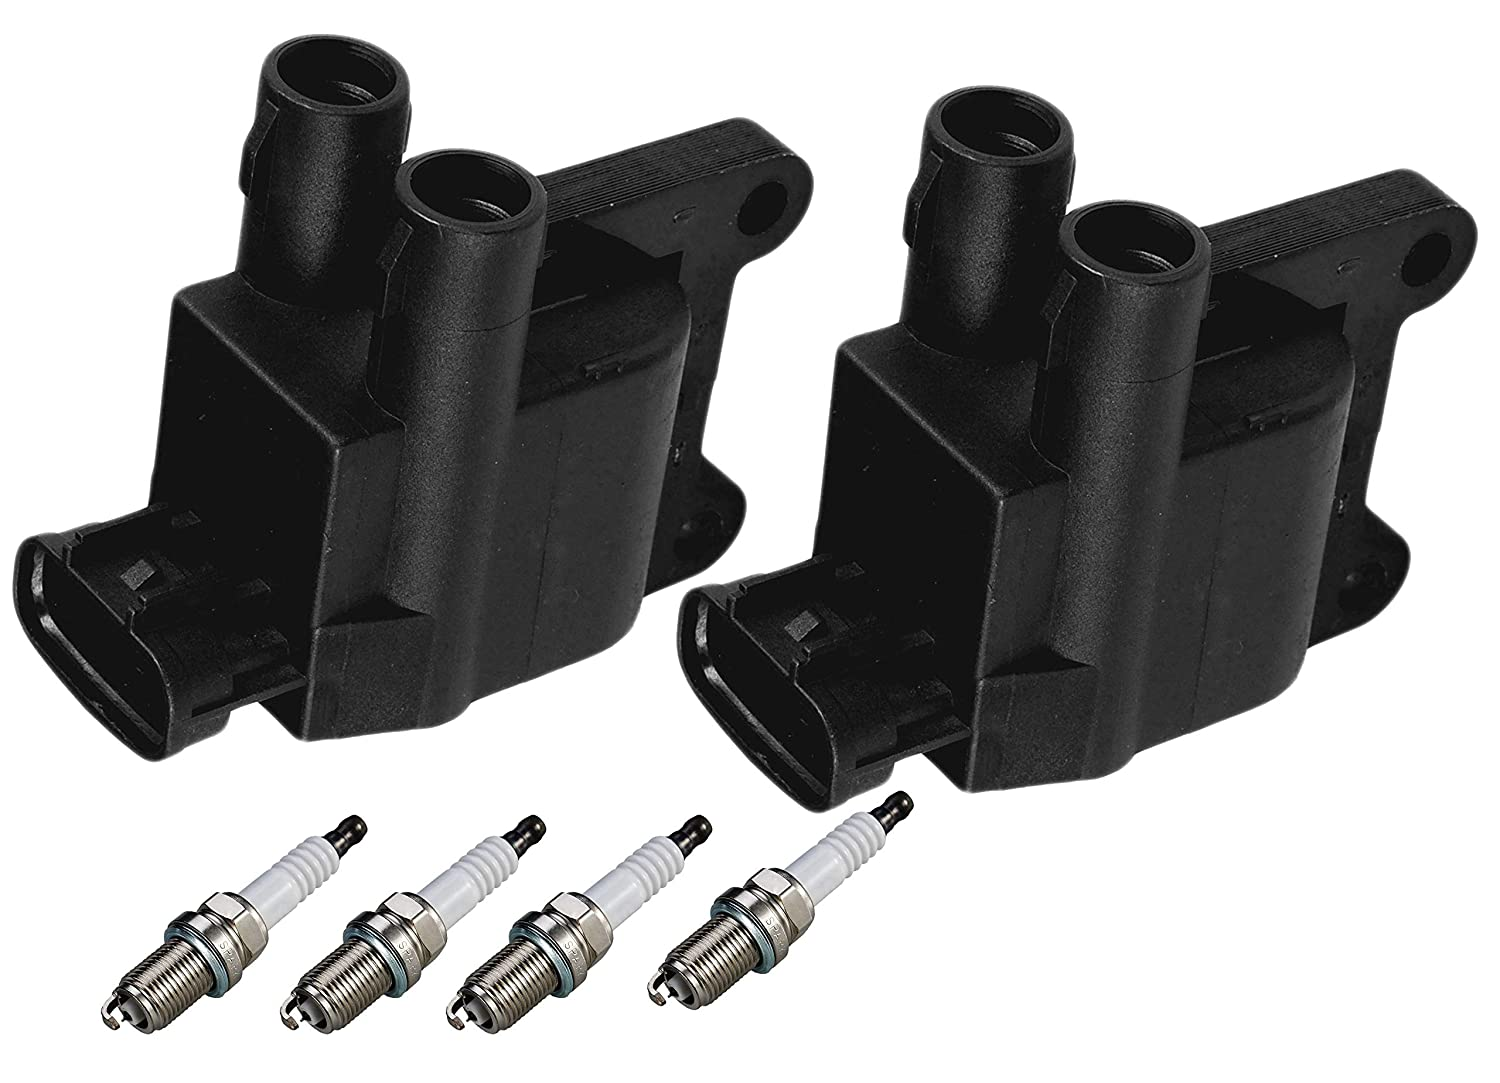 ENA Set of 4 Spark Plugs and 2 Ignition Coils for 1997-2001 Toyota Camry Rav4 Solara 2.0L 2.2L